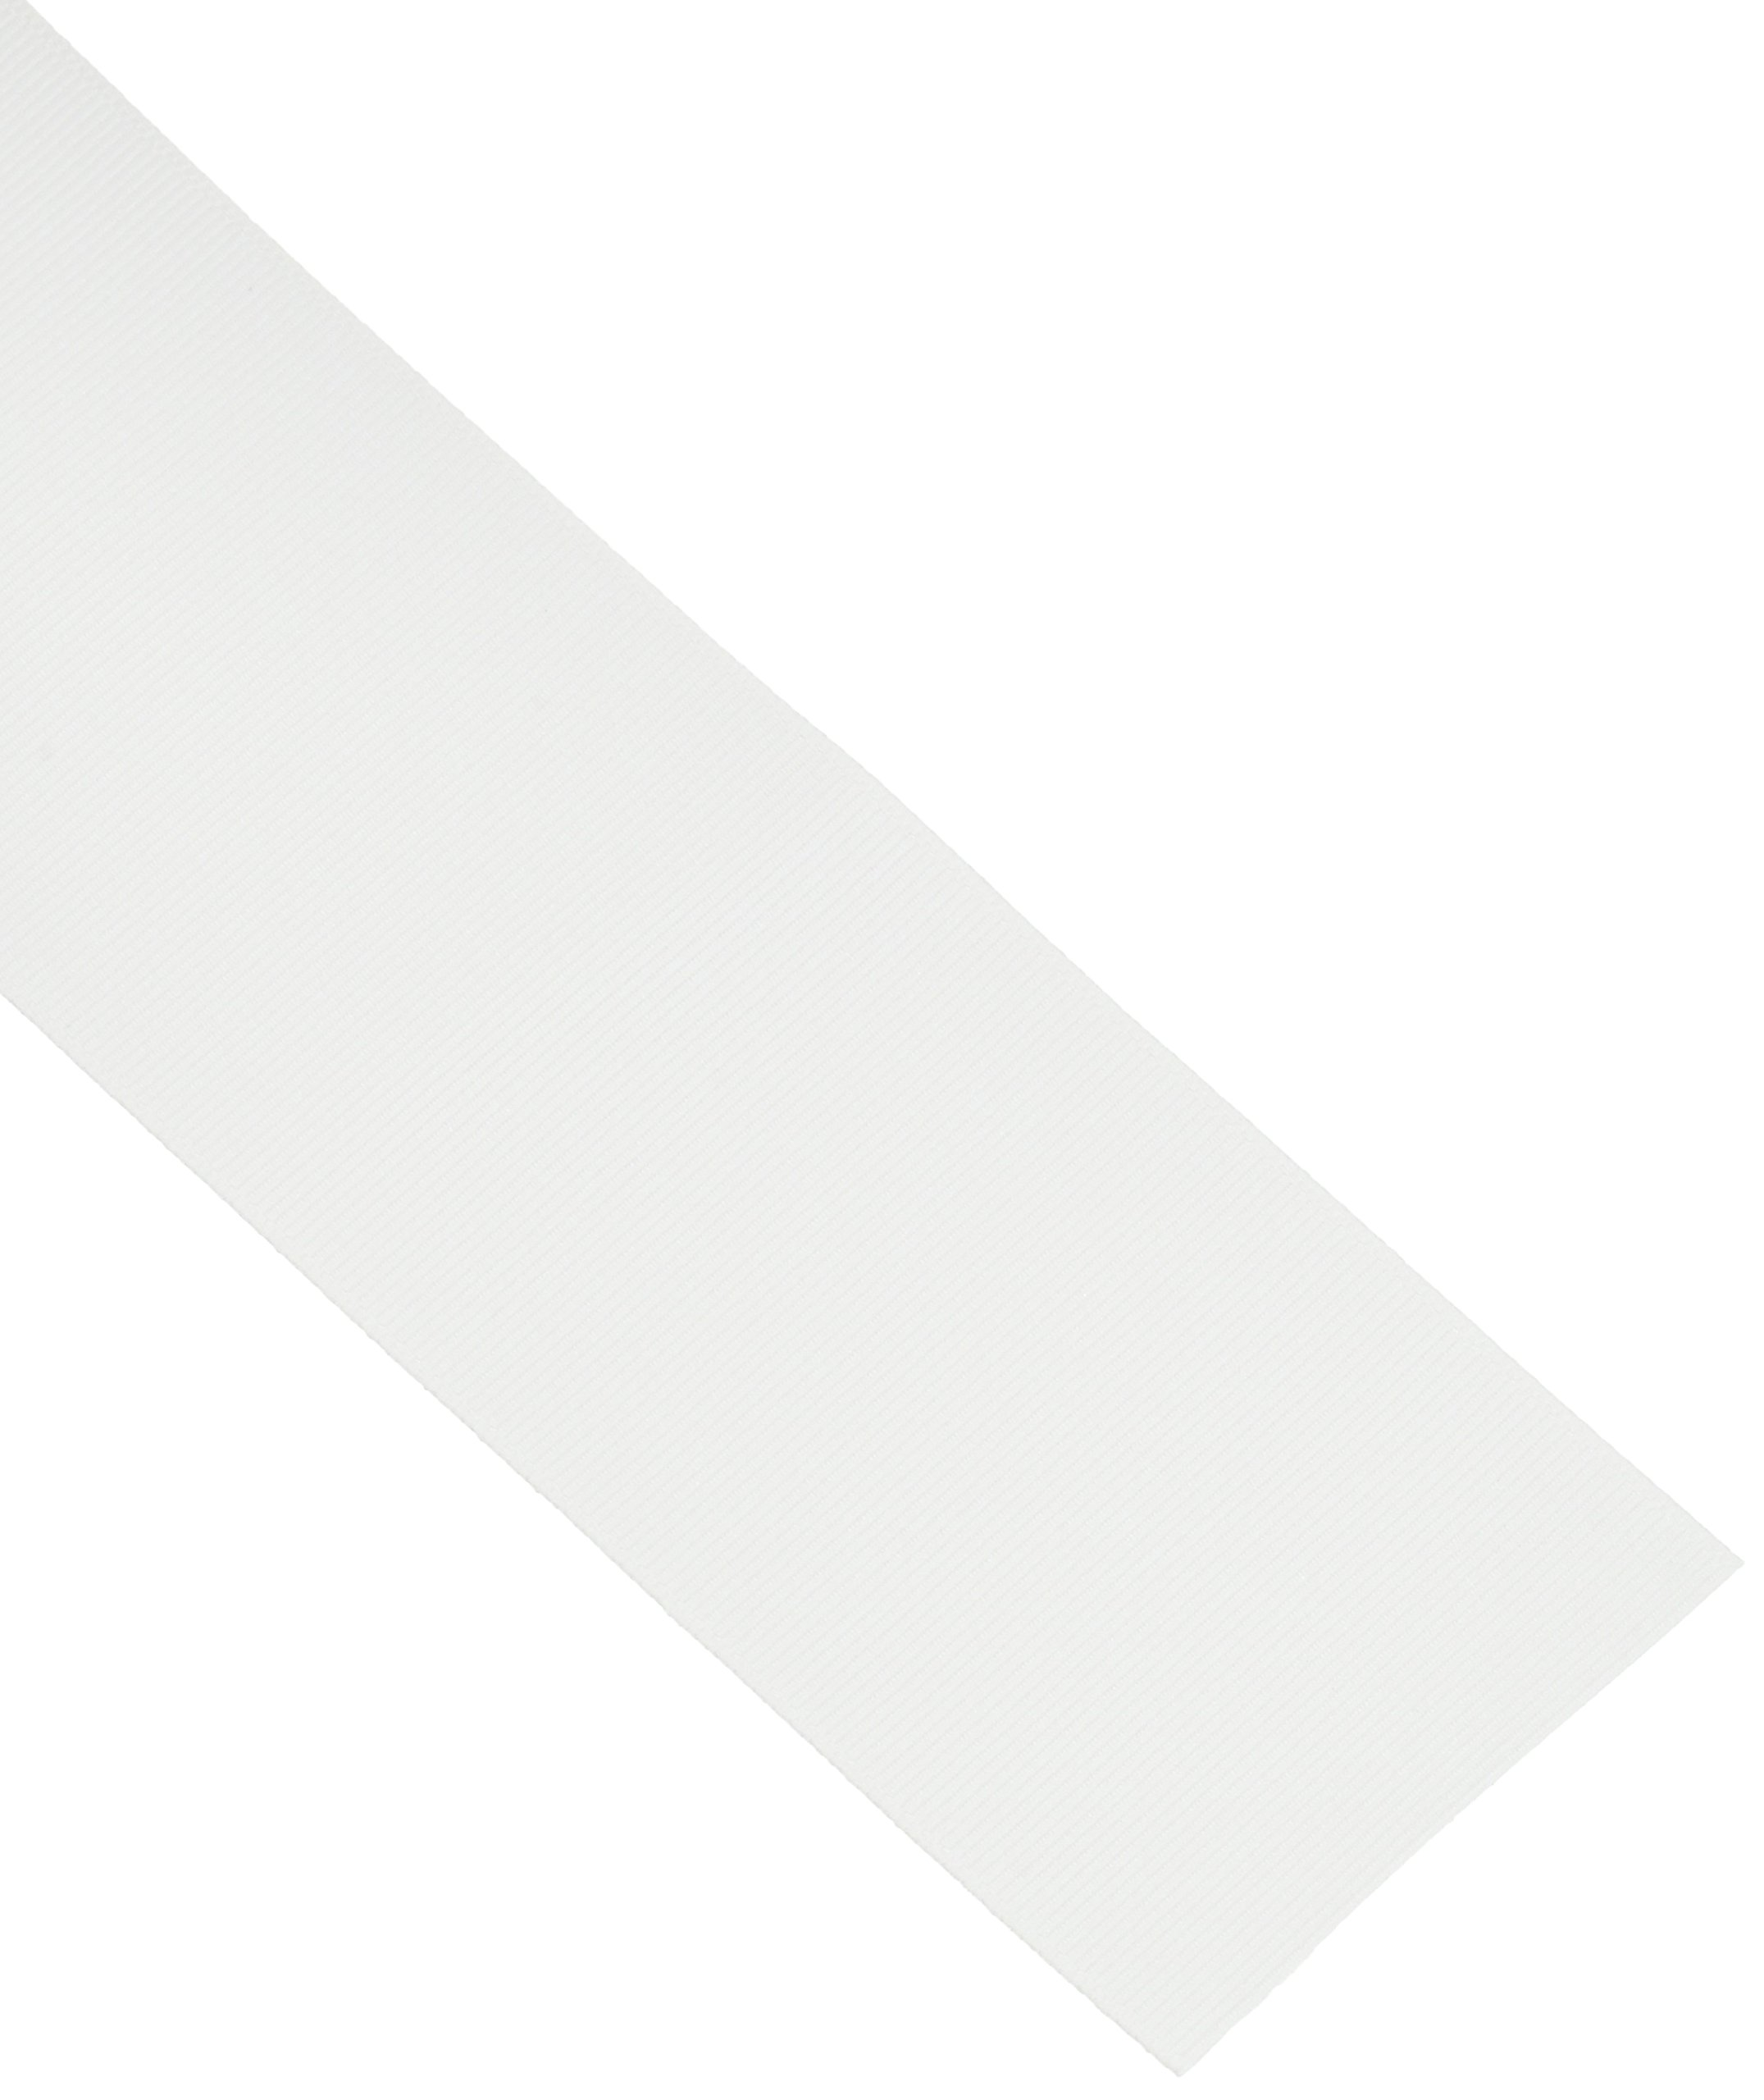 Offray Berwick 3'' Grosgrain Ribbon, White, 50 Yards by Offray